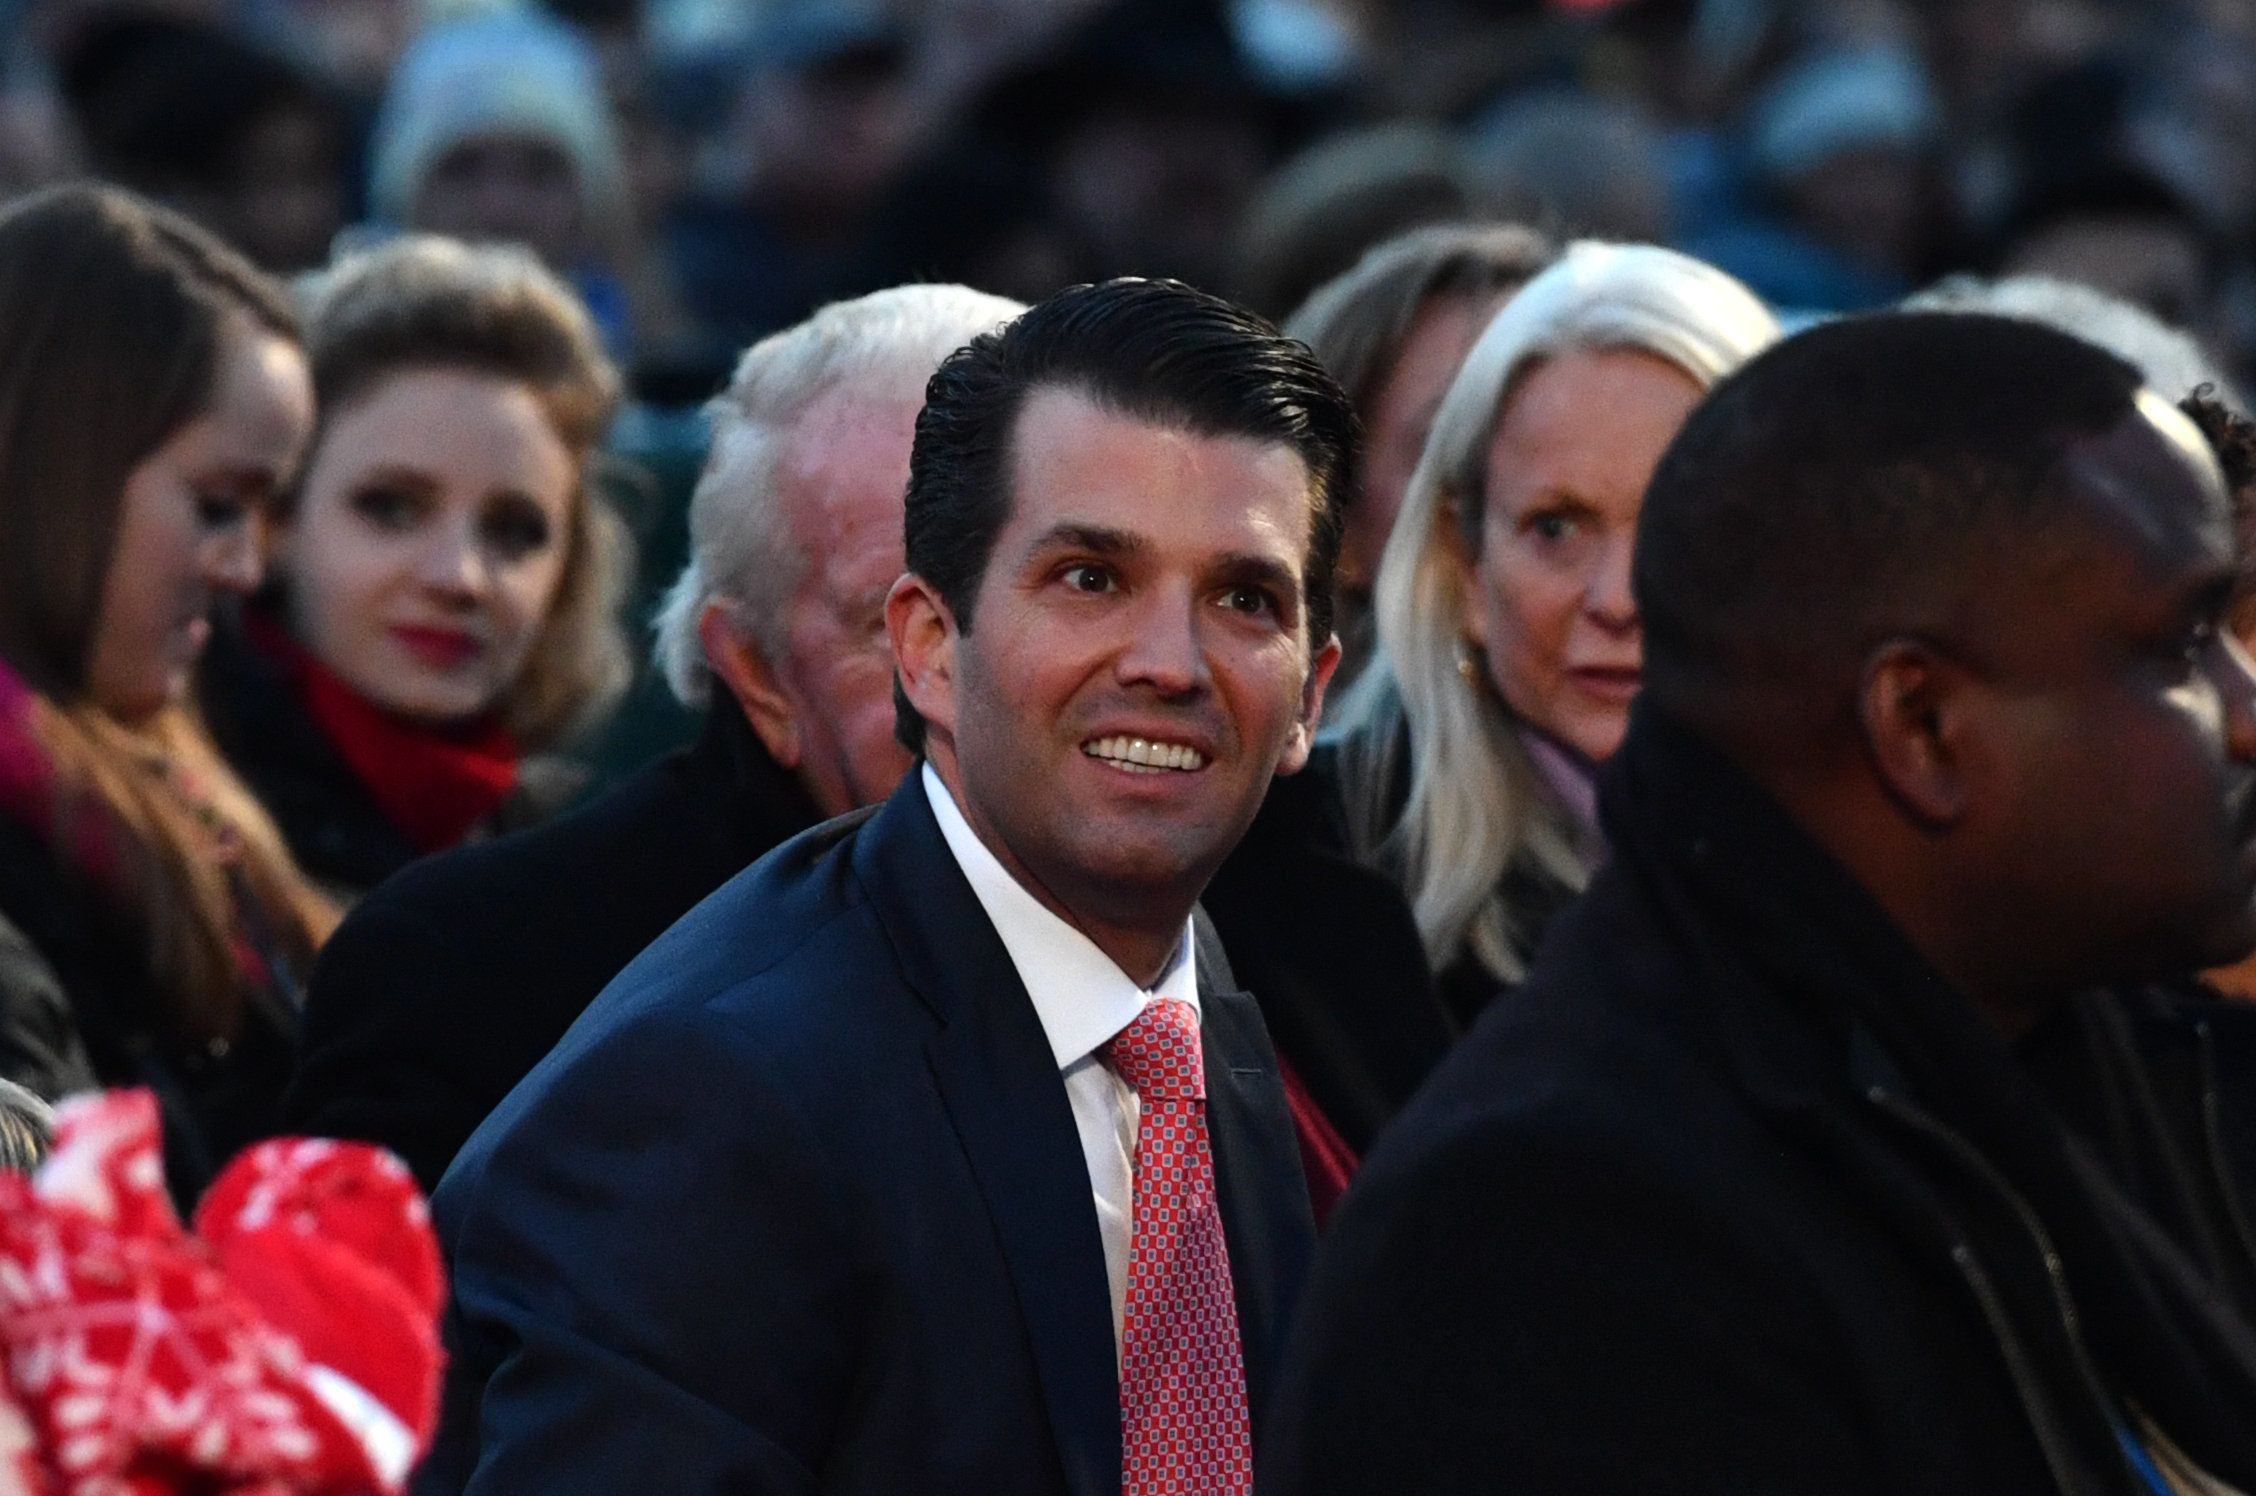 Trump Jr. Doesn't Seem To Know His Dad Designated The FCC Chairman